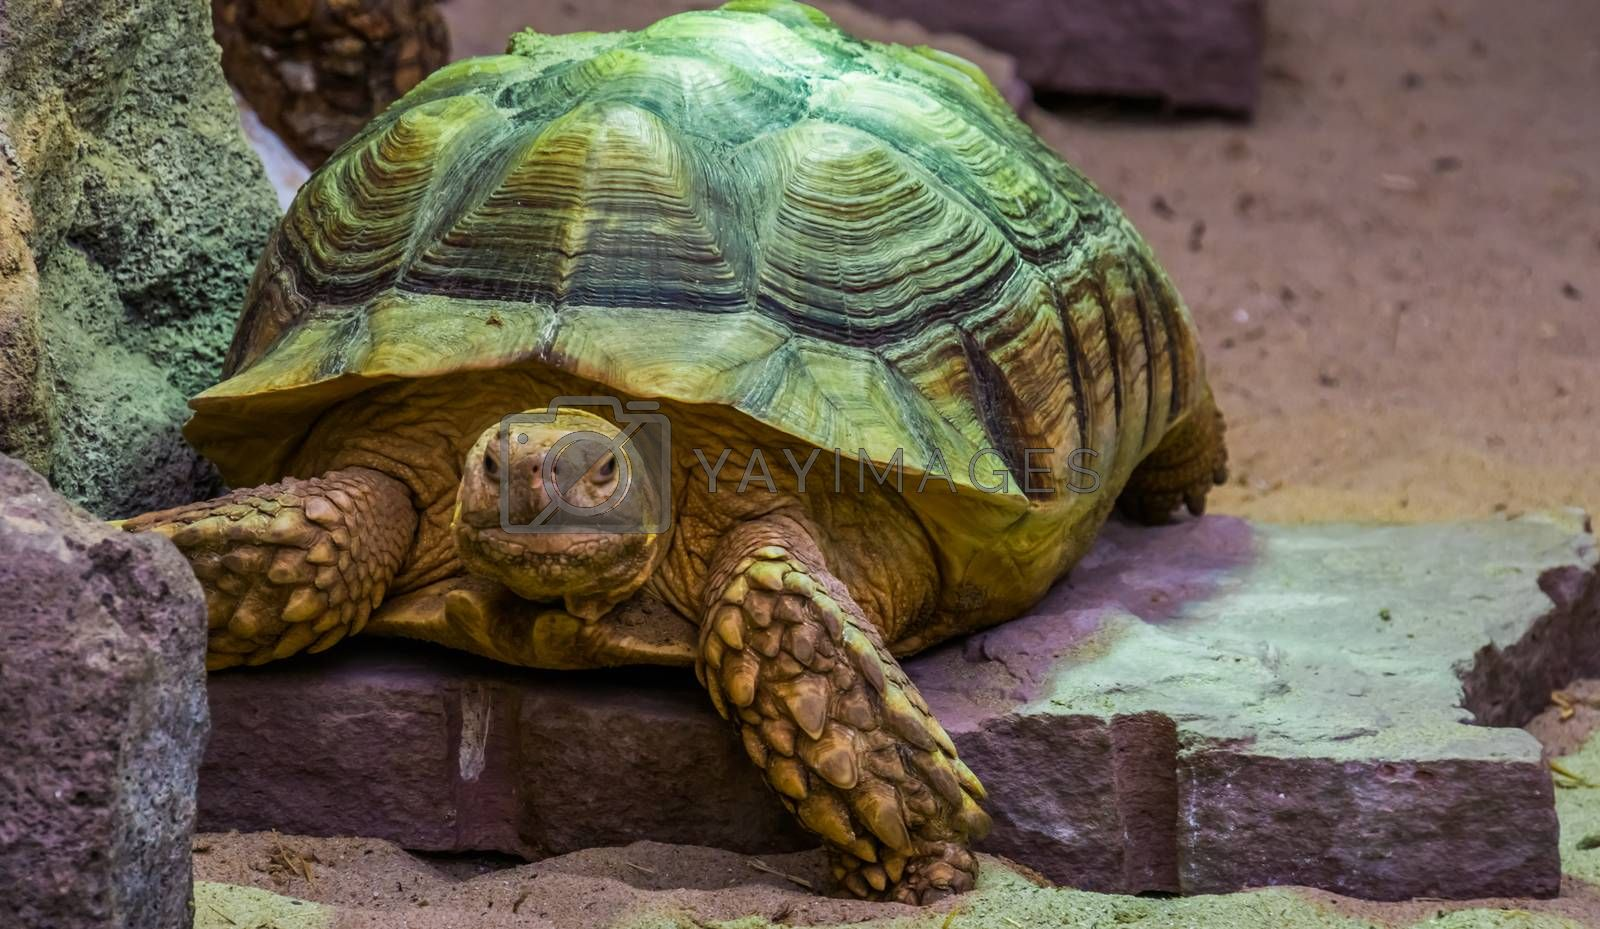 African spurred tortoise in closeup, tropical land turtle from the desert of Africa, Vulnerable reptile specie